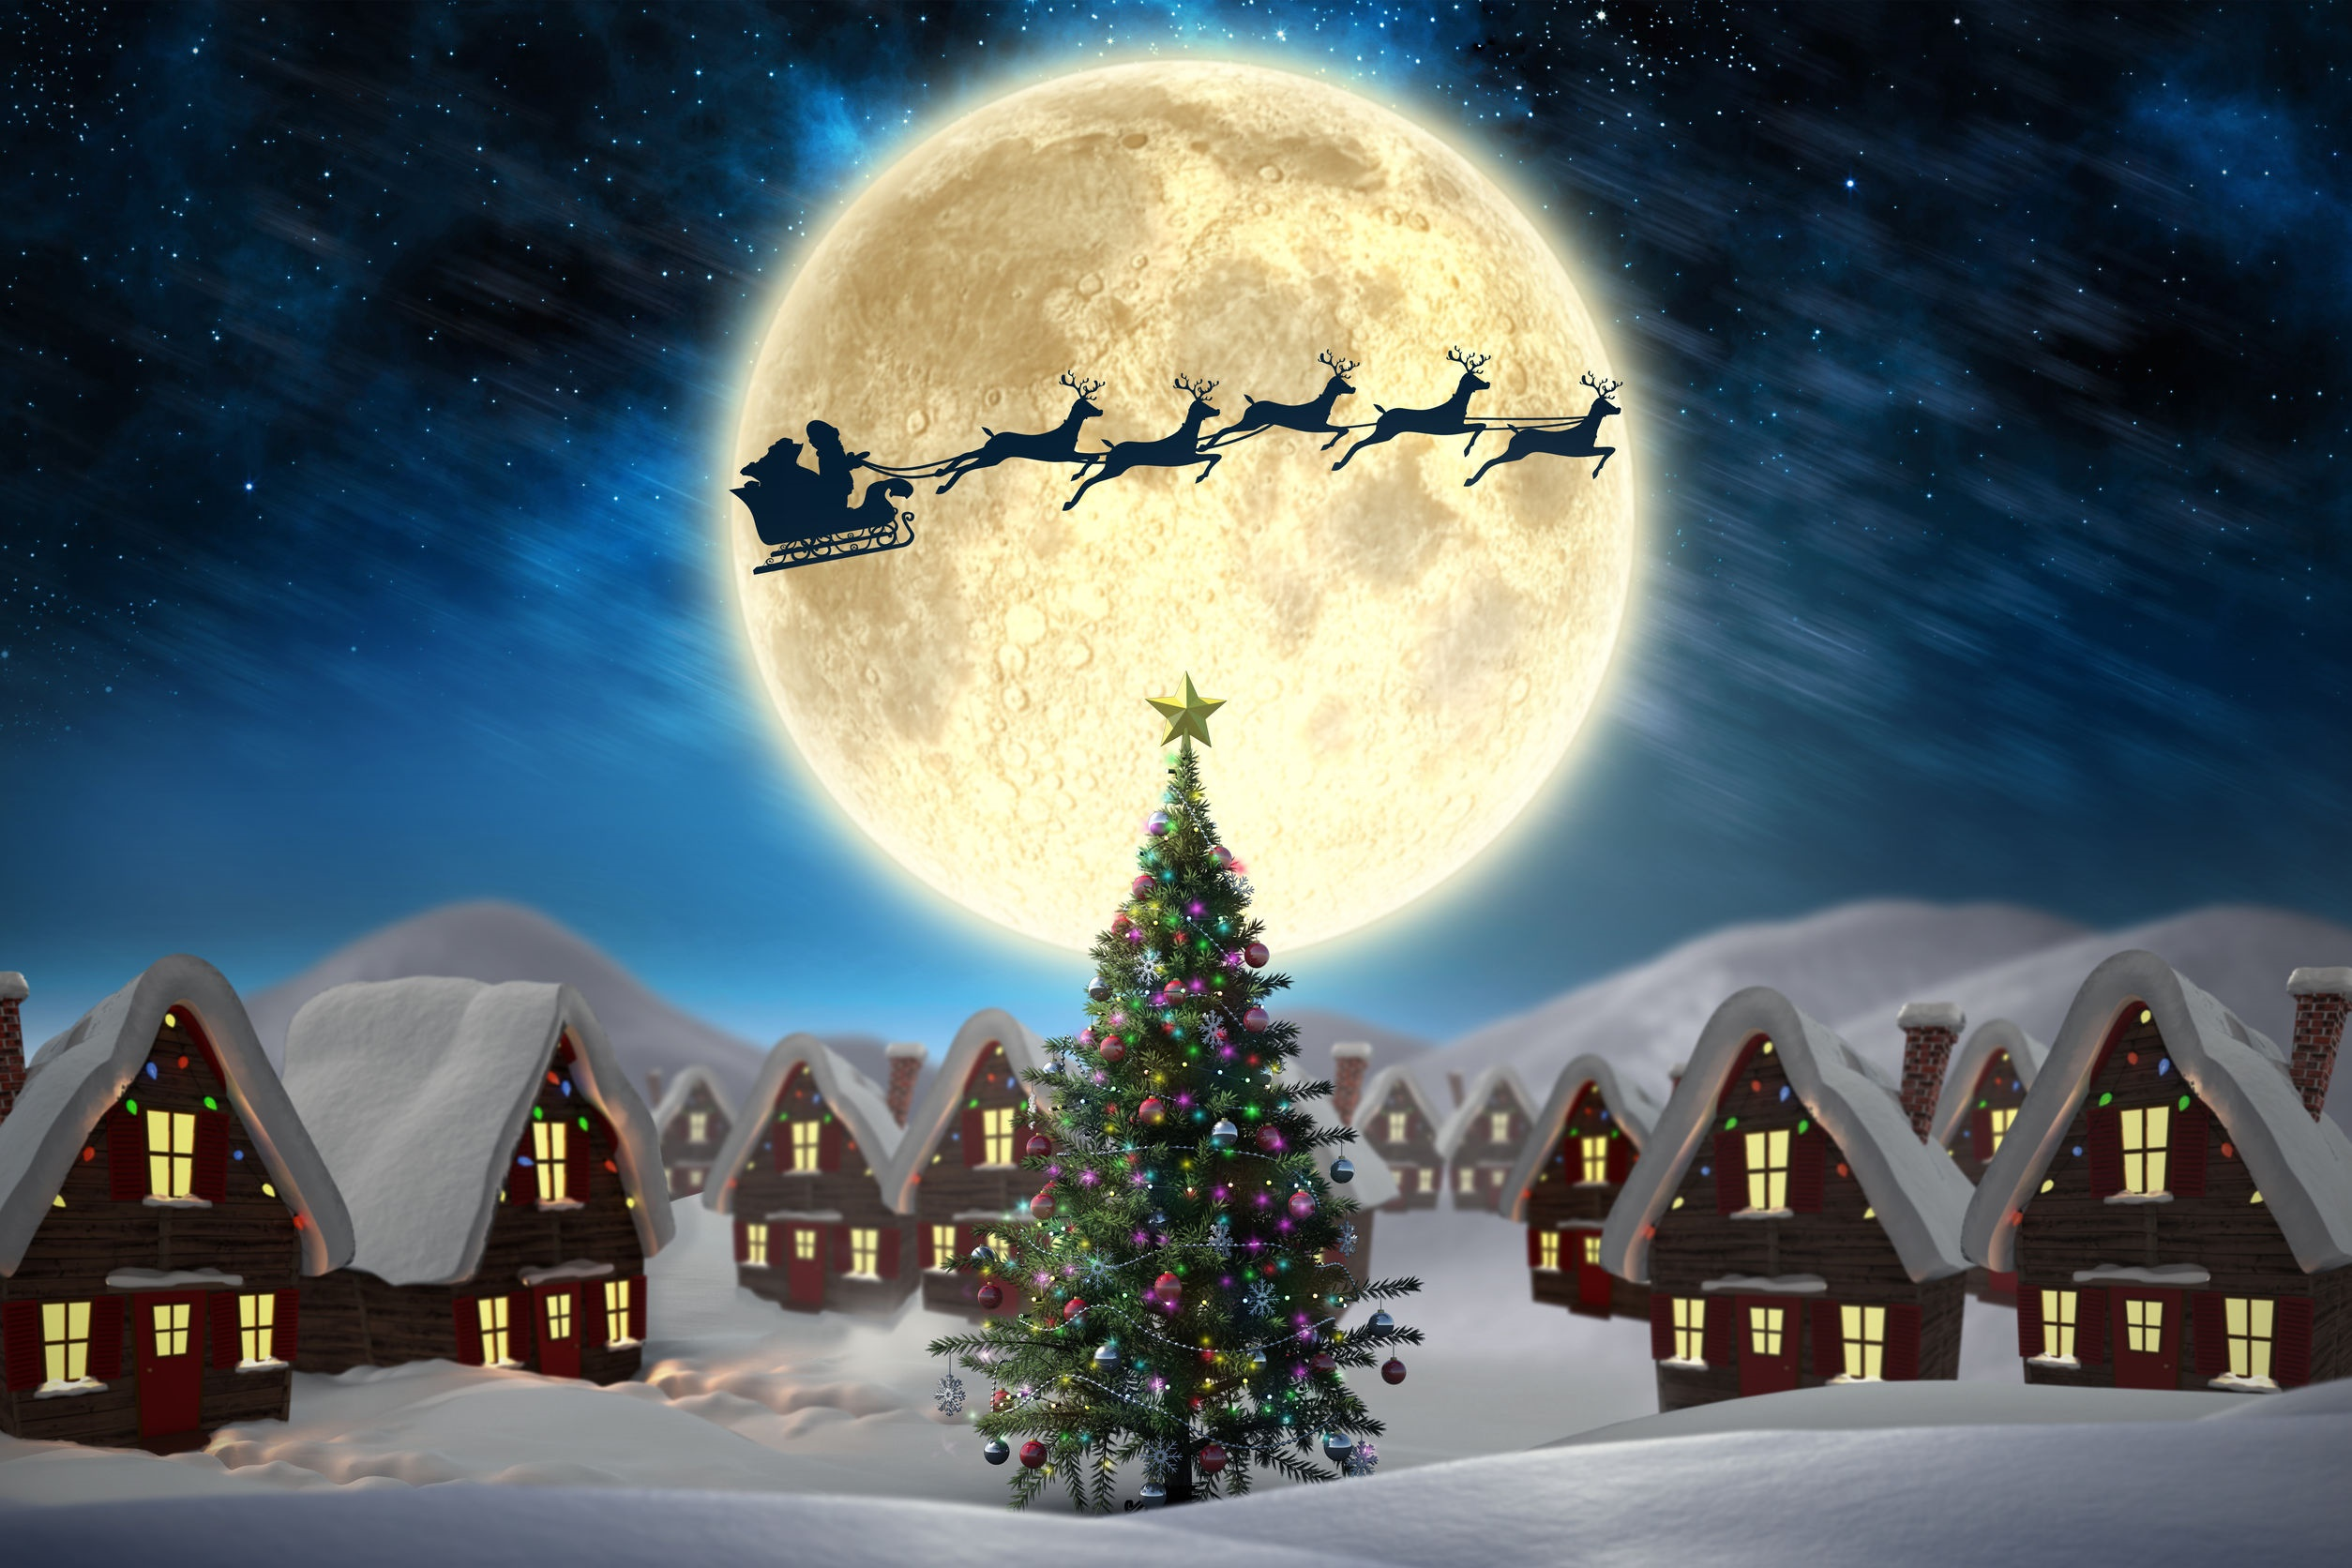 How to Enjoy the Christmas Day Full Moon